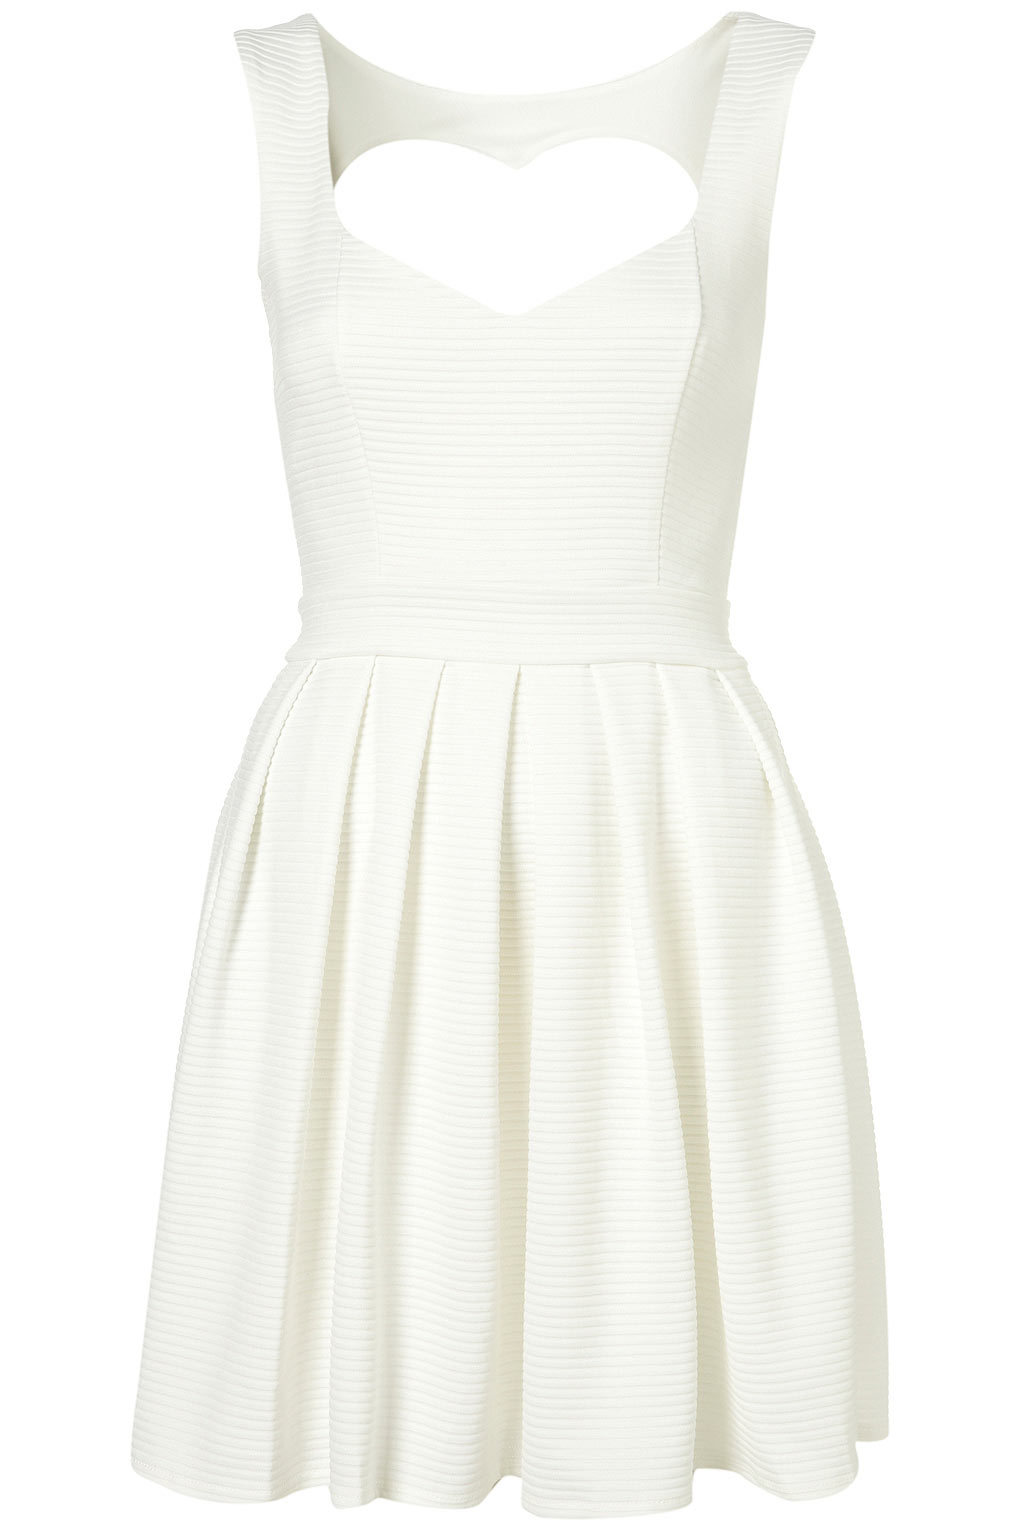 Ribbed-ivory-lwd-wedding-reception-frock-topshop.full